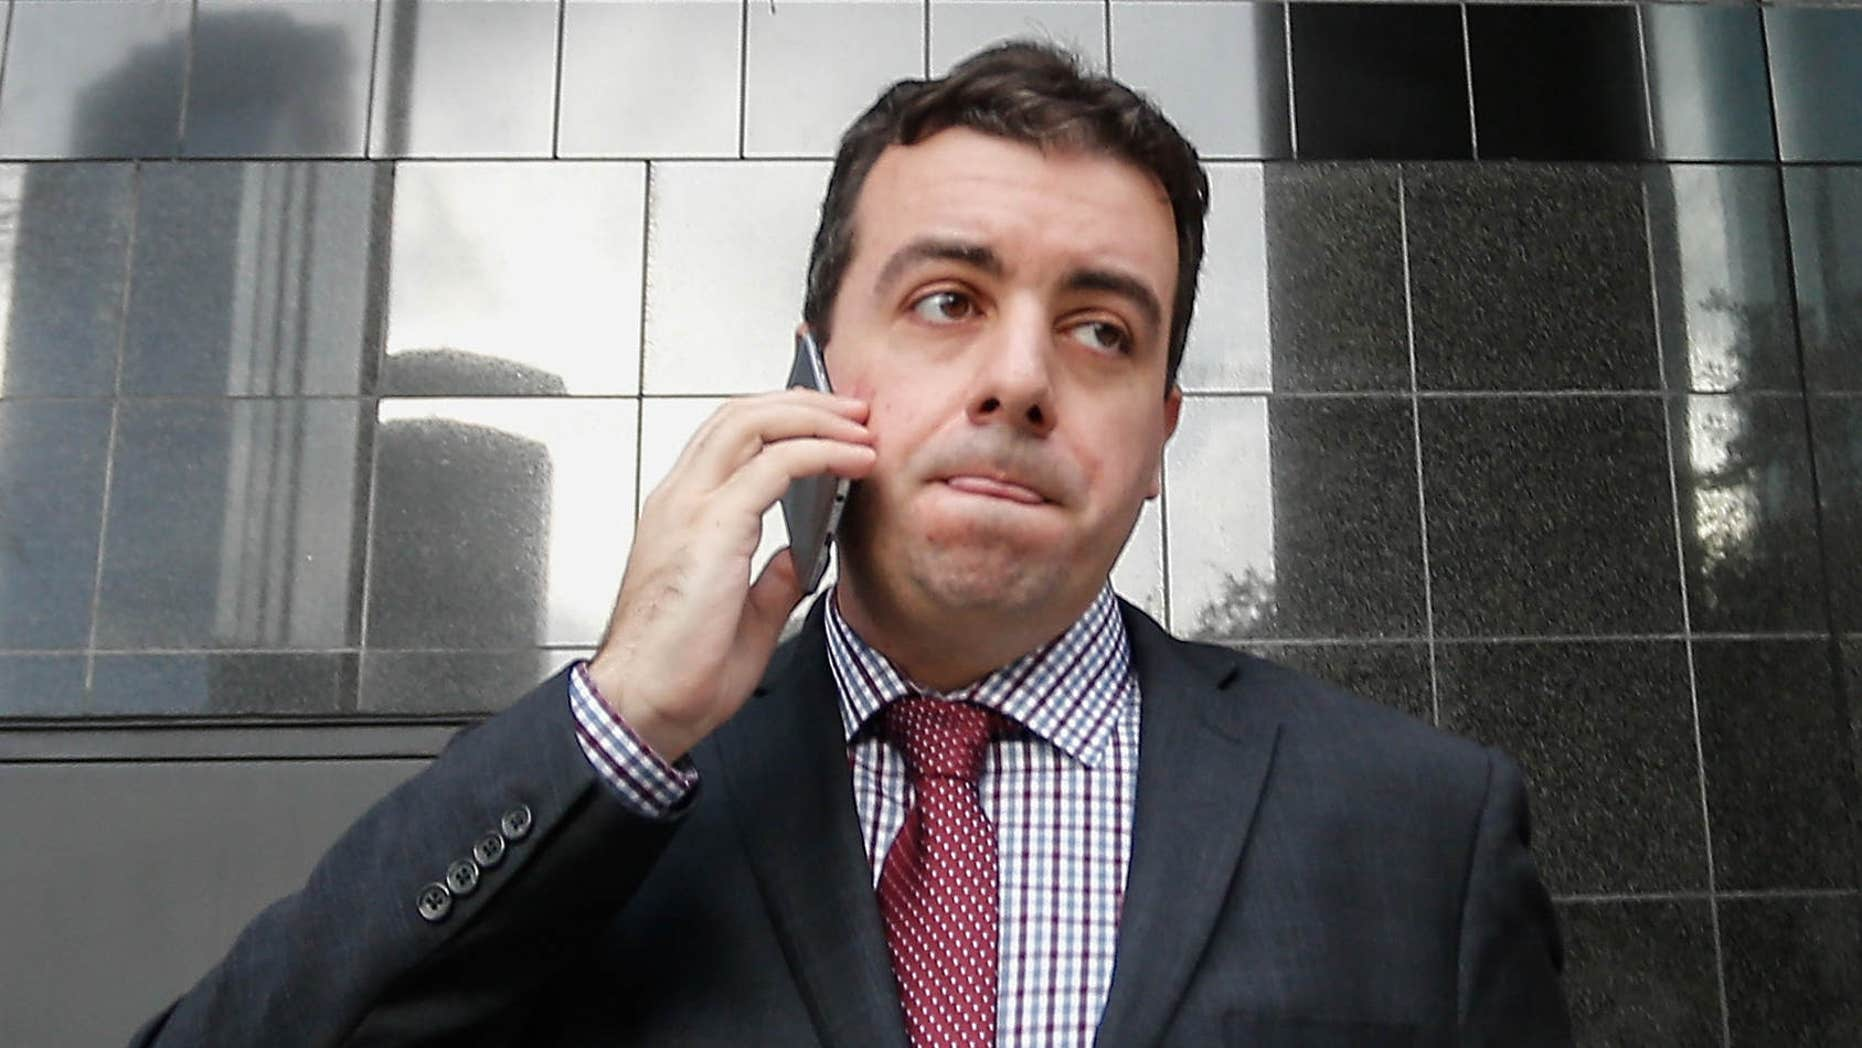 FILE - In this Jan. 8, 2016, file photo, Chris Correa, the former director of scouting for the St. Louis Cardinals, leaves the Bob Casey Federal Courthouse in Houston.